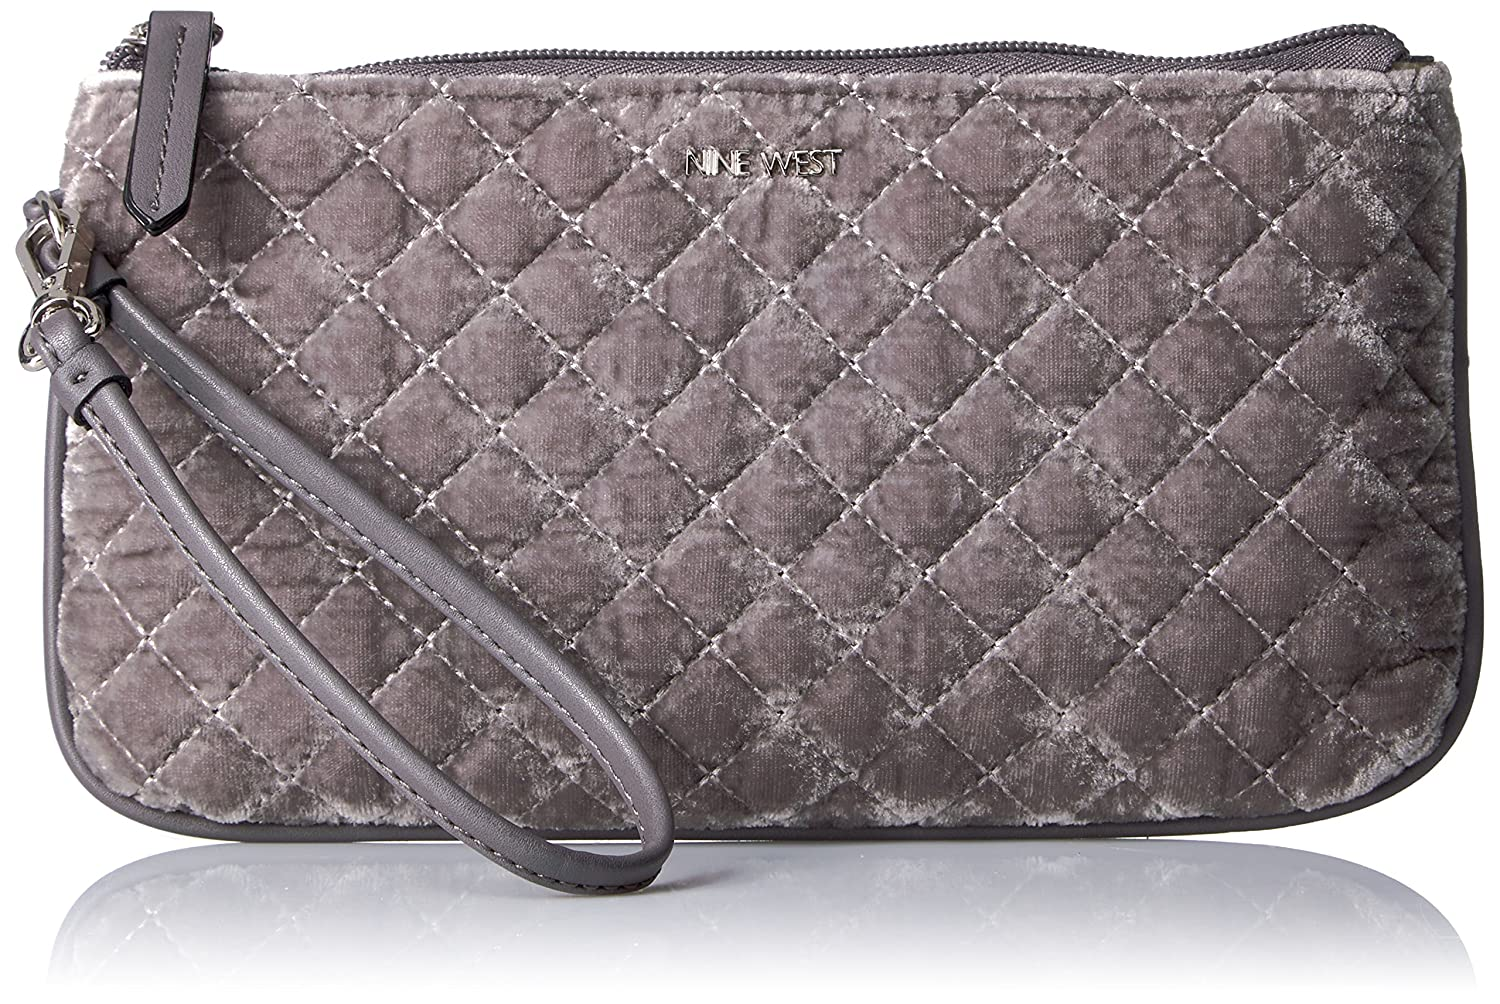 Nine West Gifting Wristlet 3